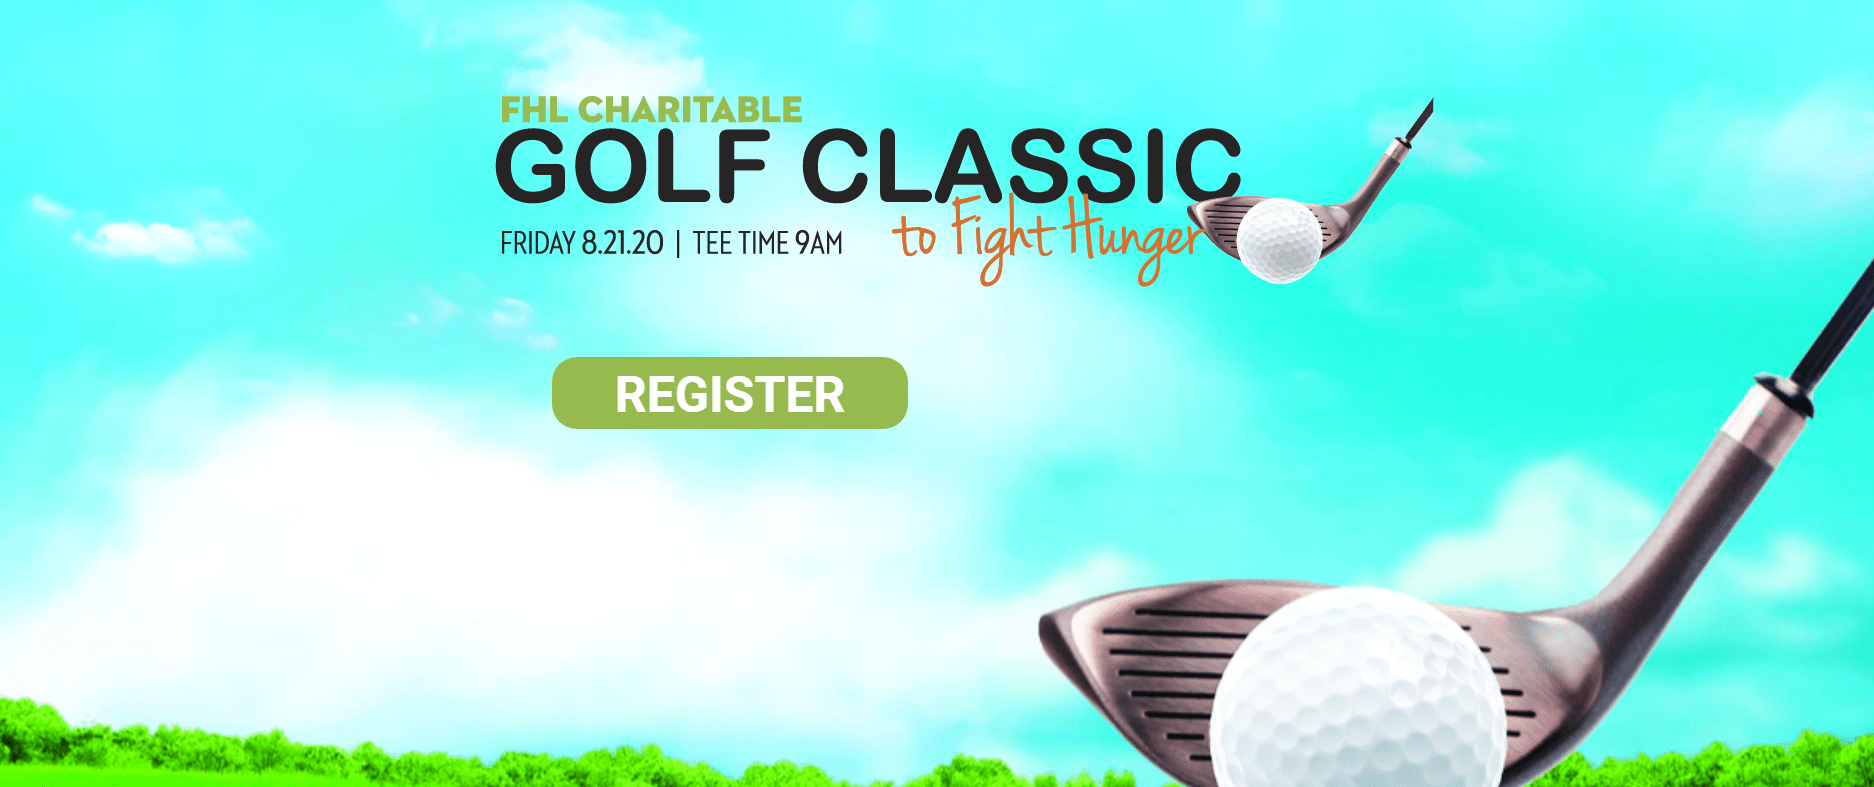 FHL Charitable Golf Classic To Fight Hunger